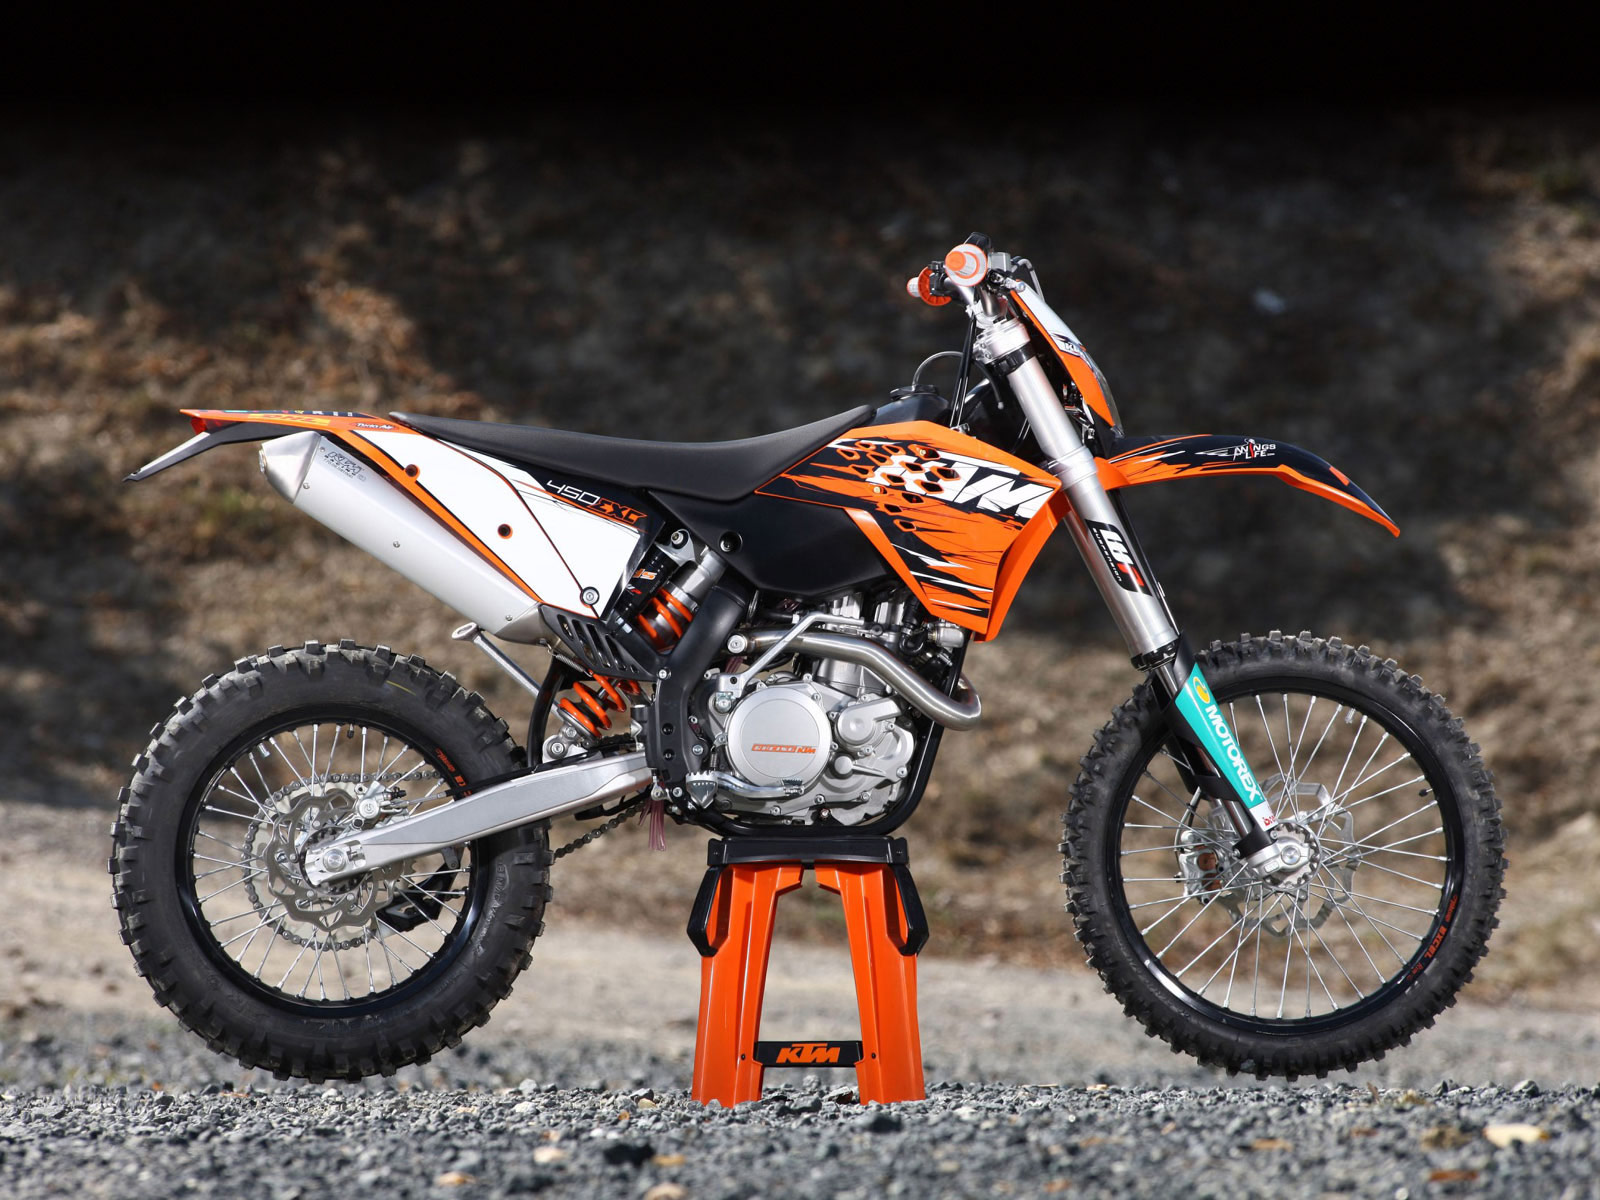 KTM 450 EXC Racing 2005 images #86420